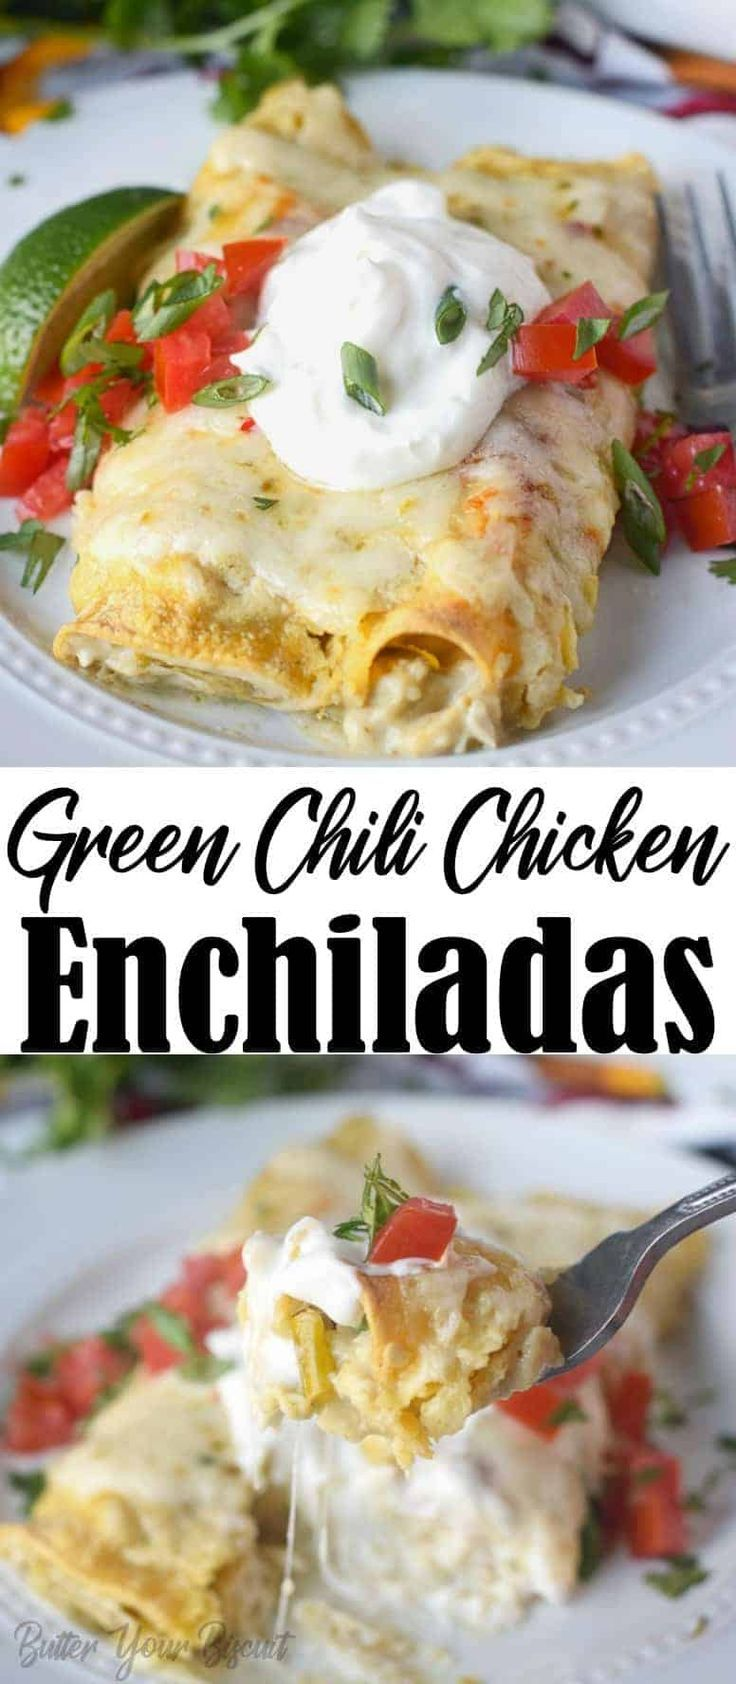 Green Chile Chicken Enchiladas Recipe-Butter Your Biscuit